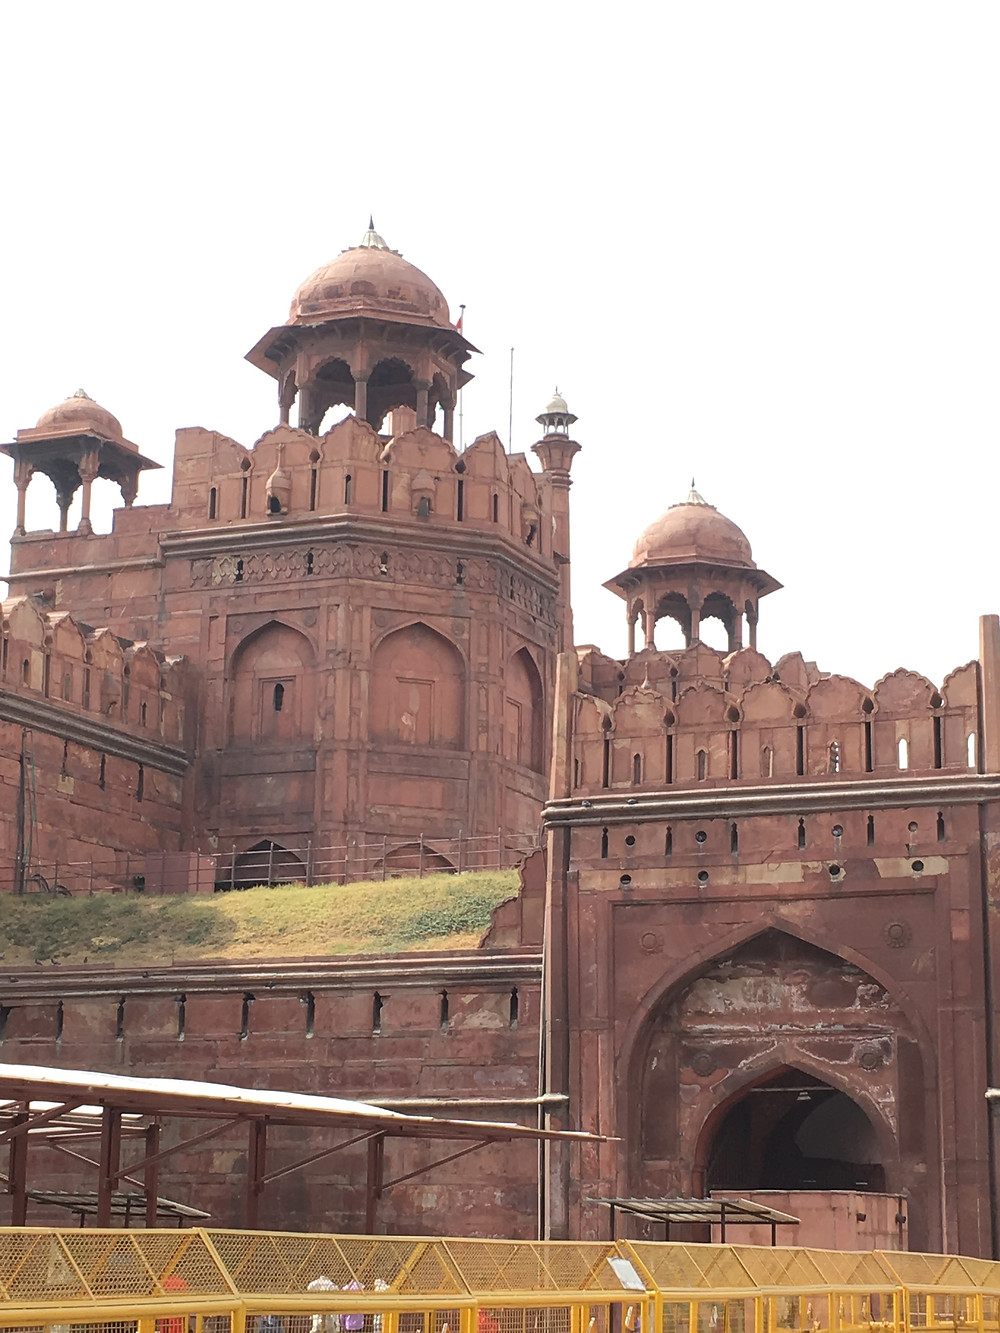 A photo of the Red Fort